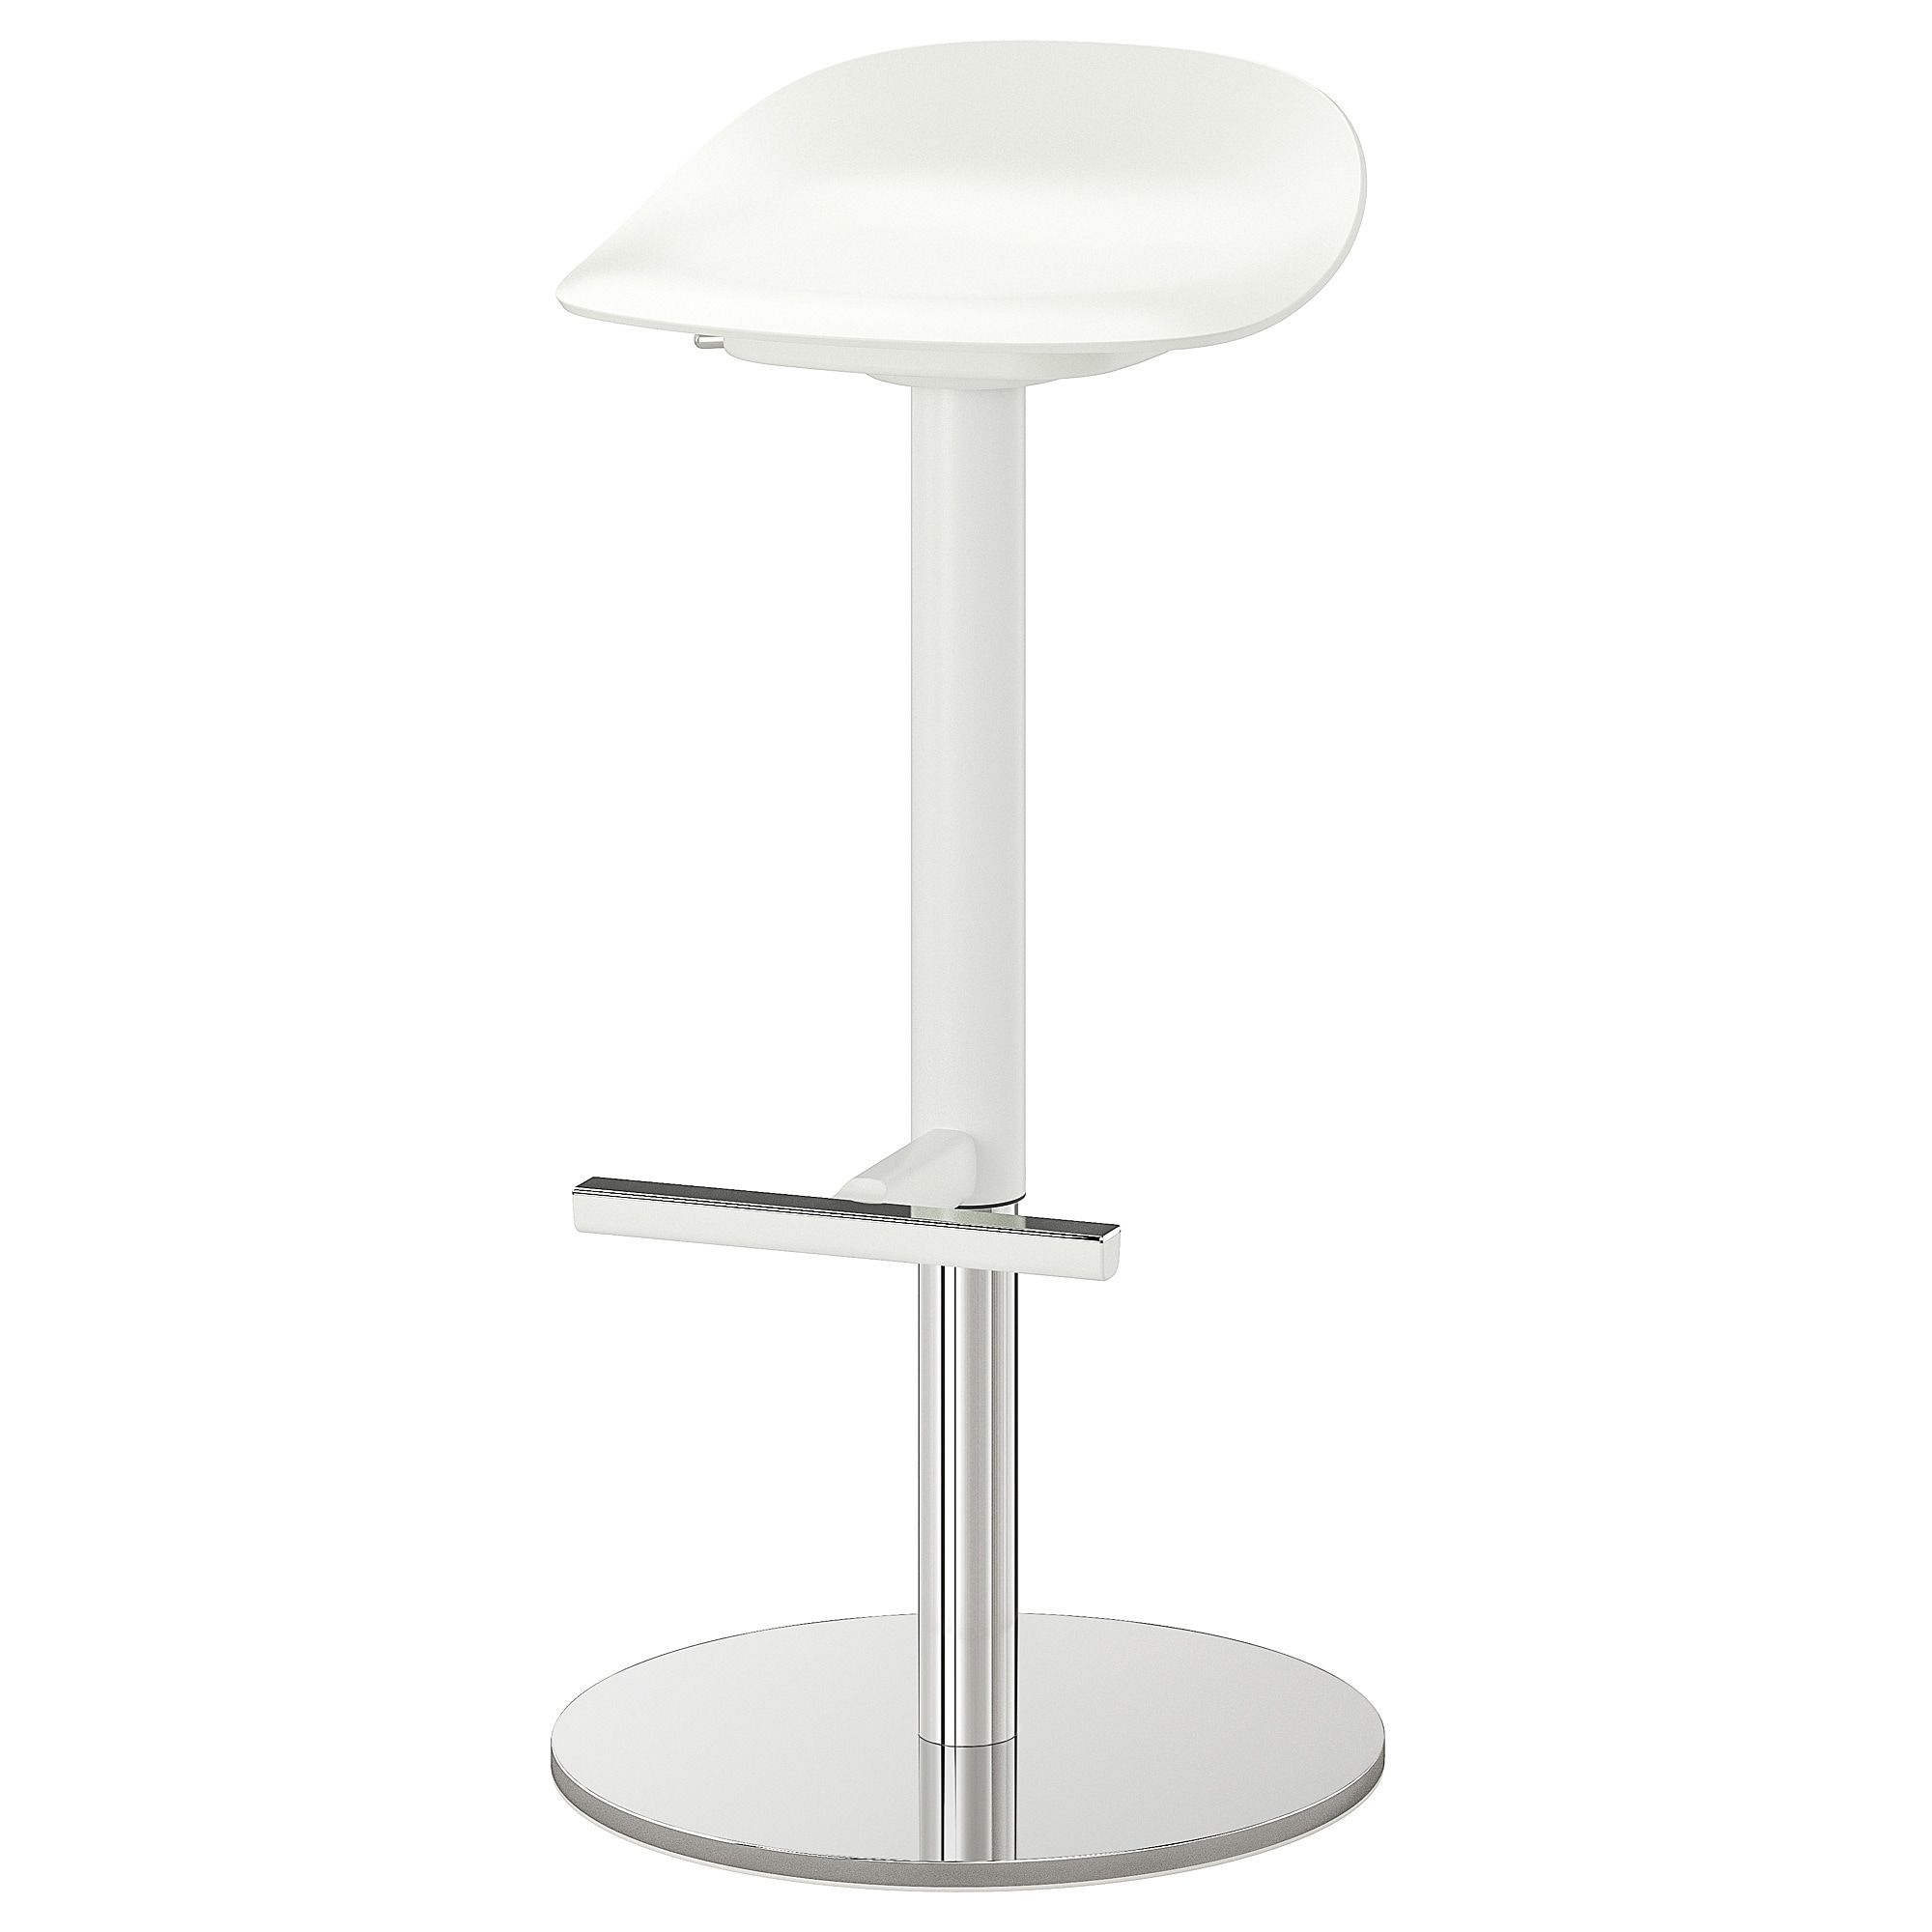 Janinge Tabouret De Bar Blanc Ikea Canada Ikea In 2020 Bar Stools White Bar Stools Stool